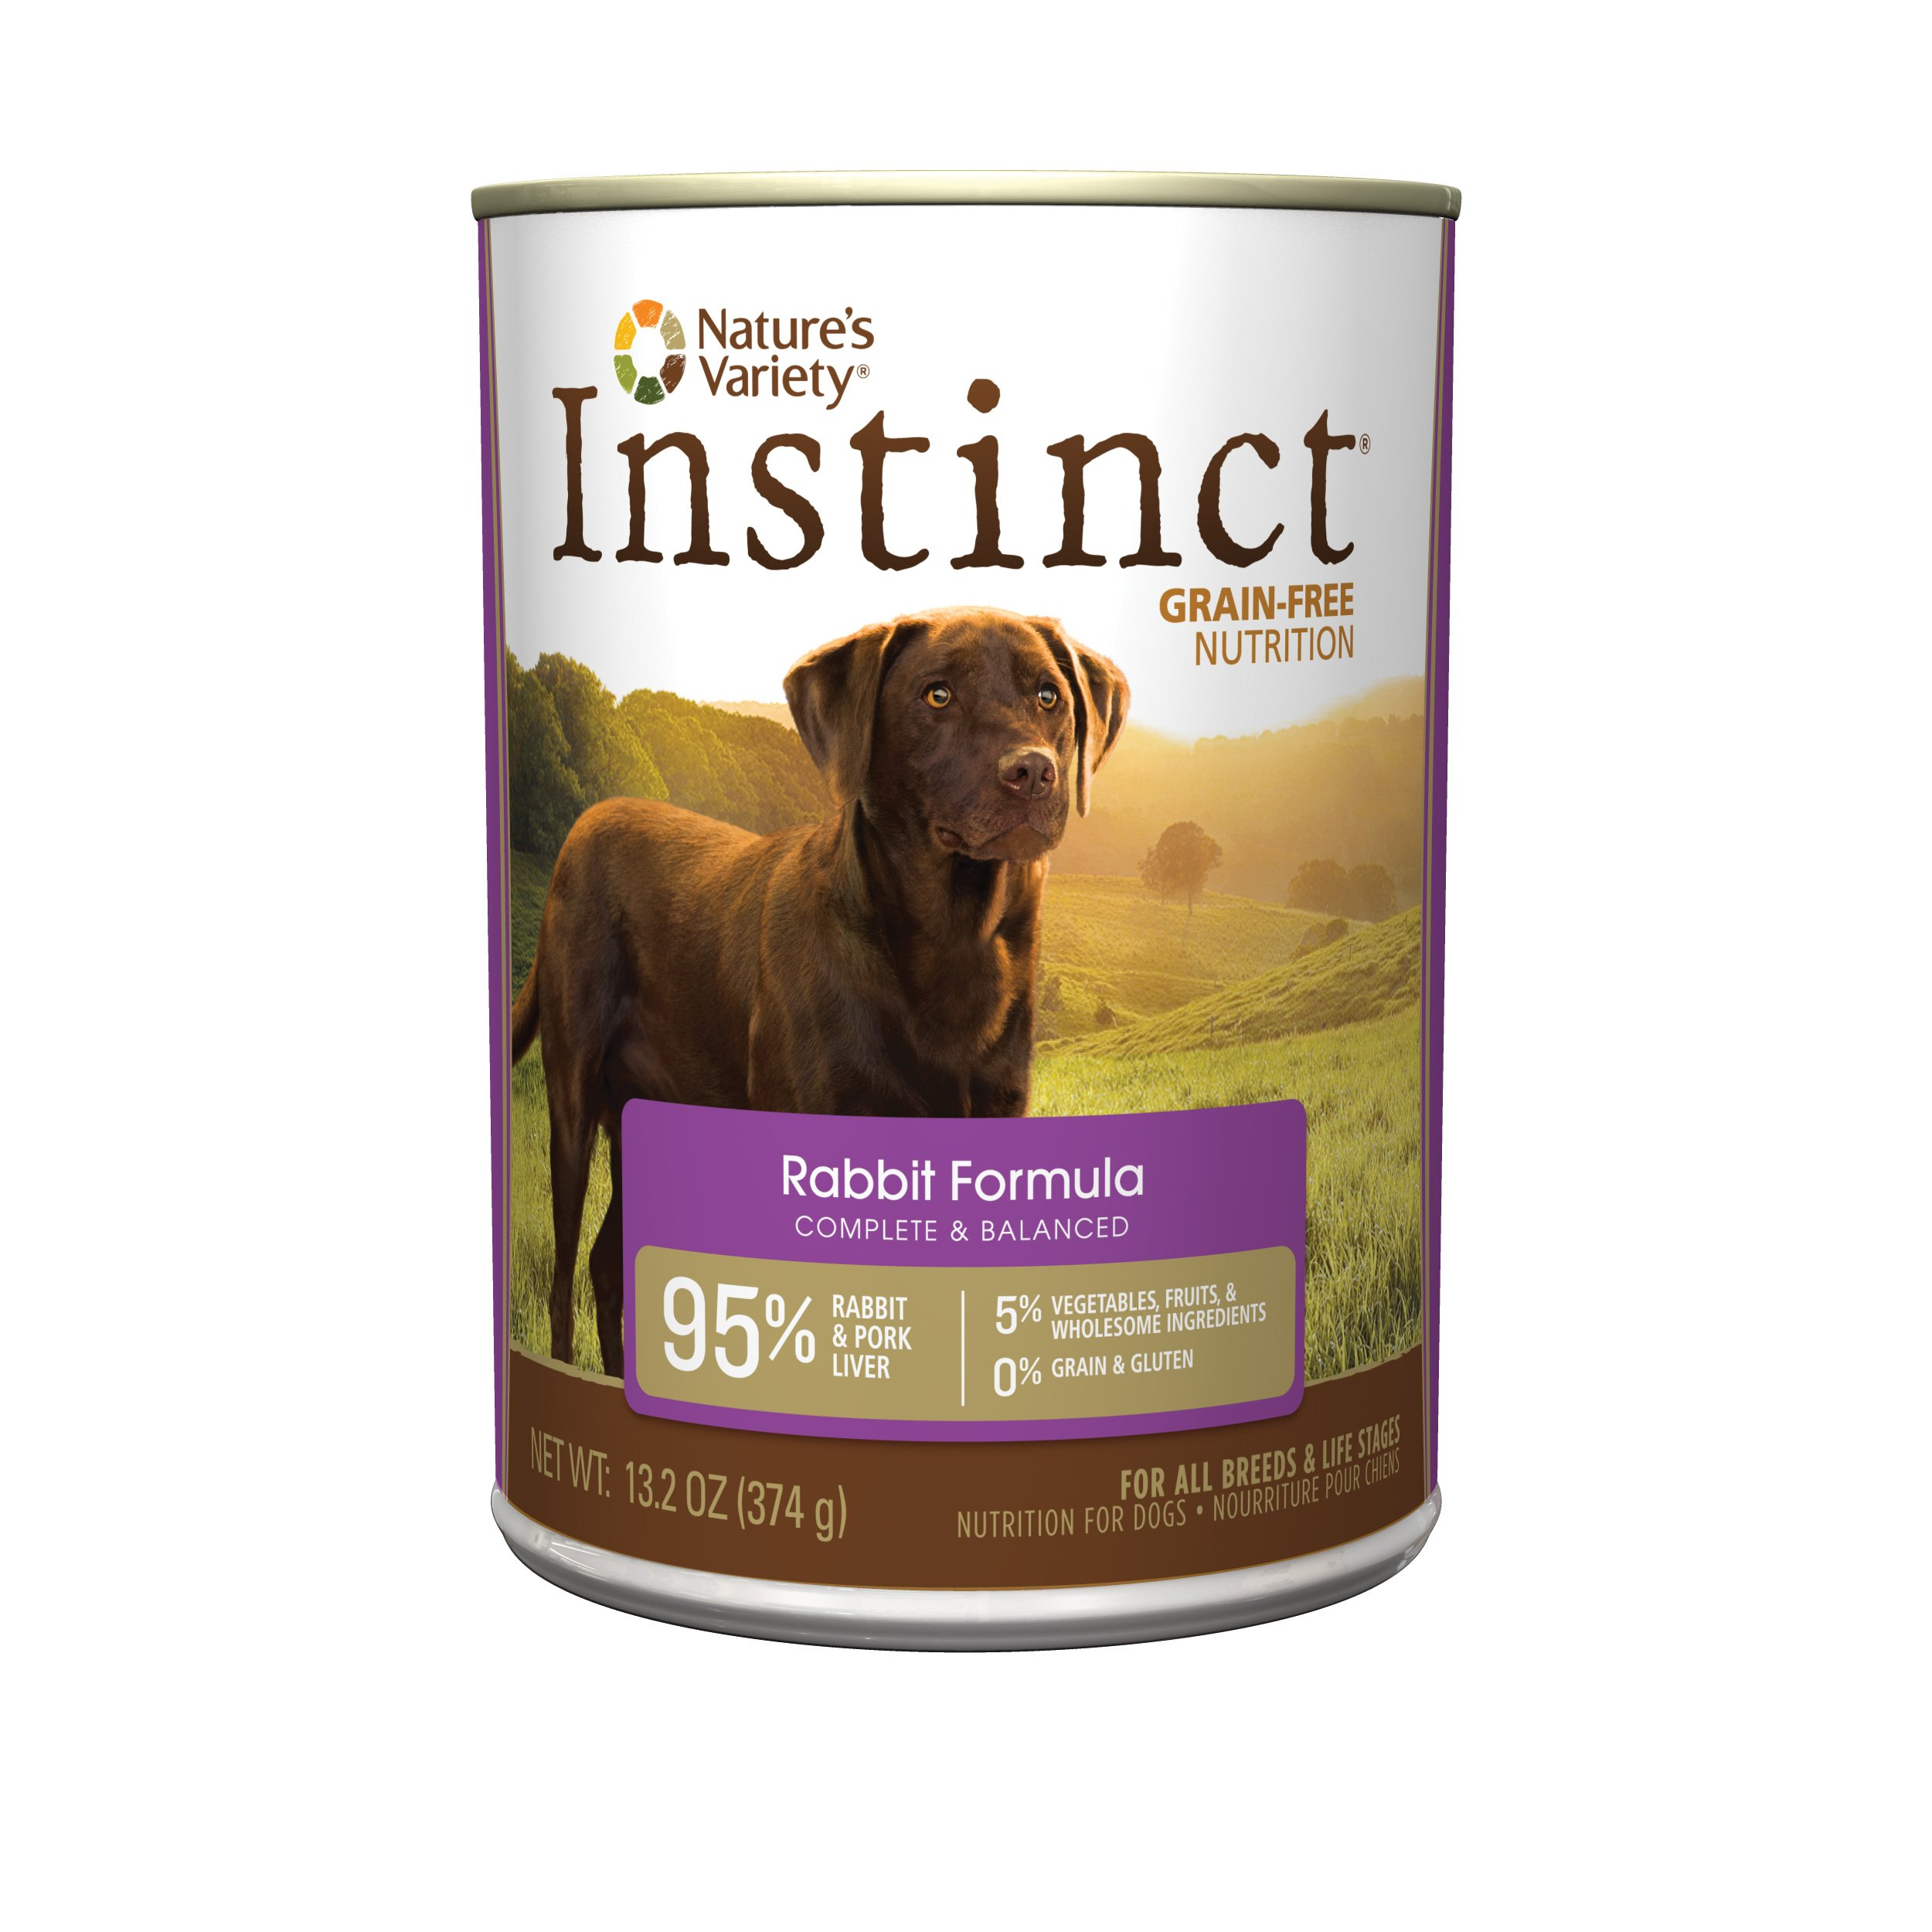 Instinct Grain Free Rabbit Formula Natural Wet Canned Dog Food by Nature's Variety, 13.2 oz. Cans (Case of 12)